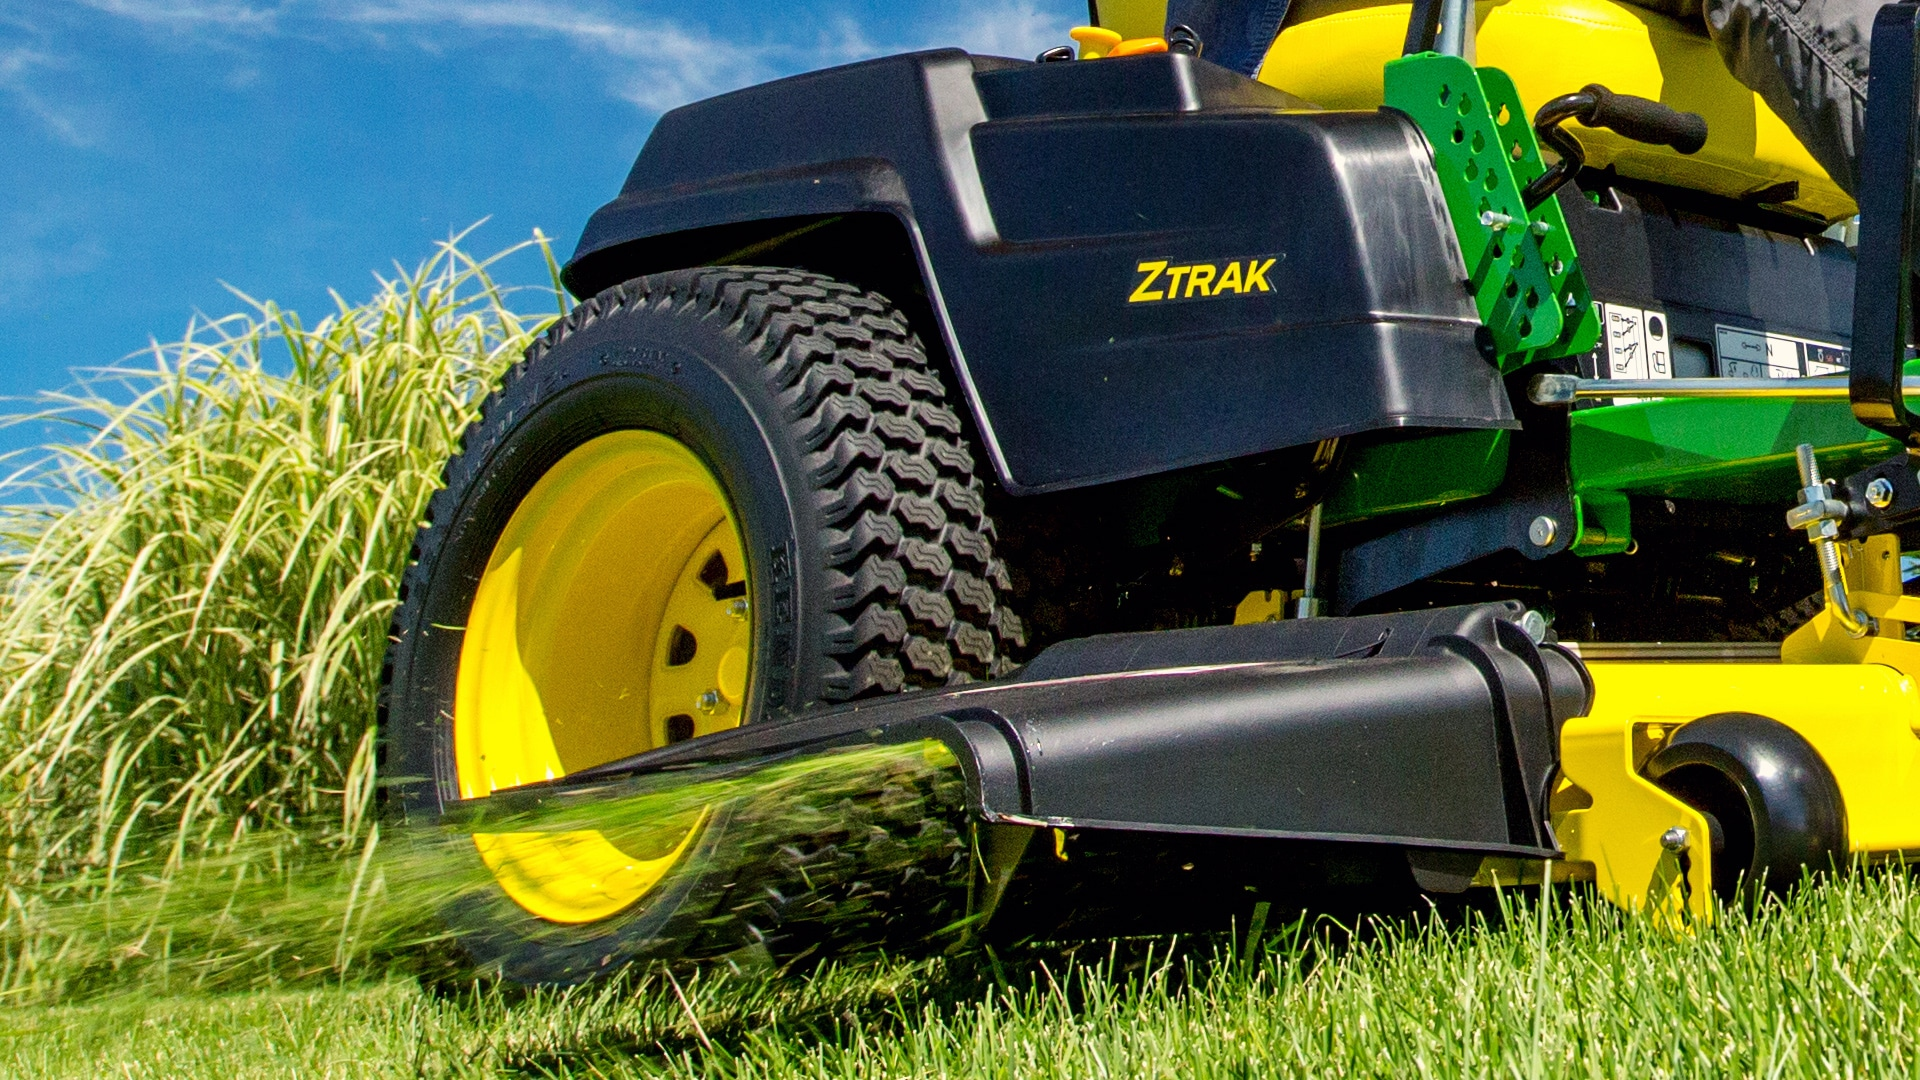 image of mulching system attached to lawn tractor